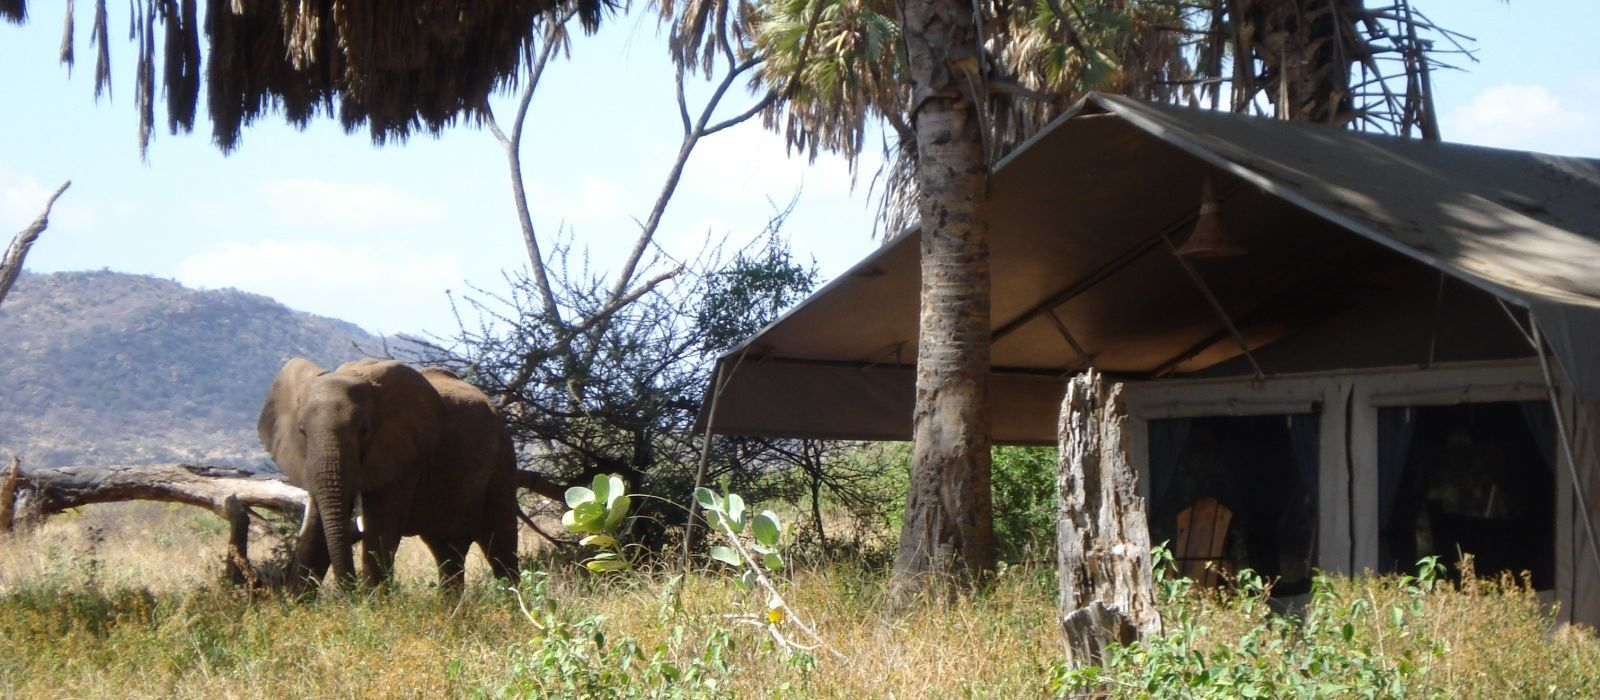 Hotel Elephant Bedroom Camp Kenya